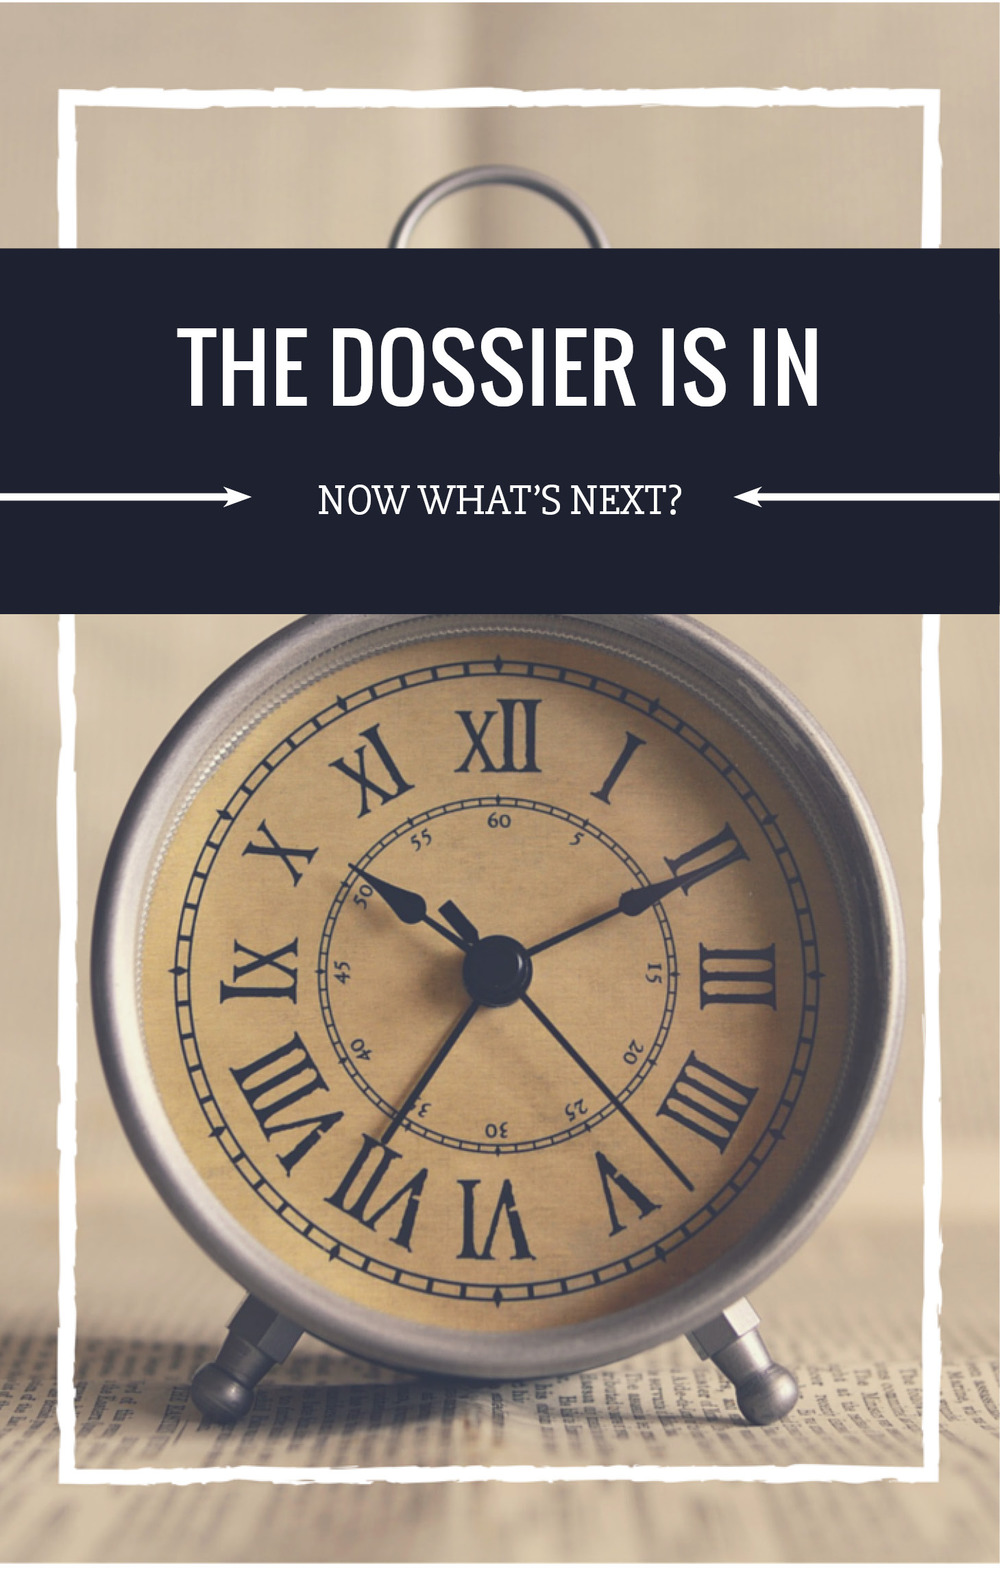 Dossier In Now What? - NJS Design Company